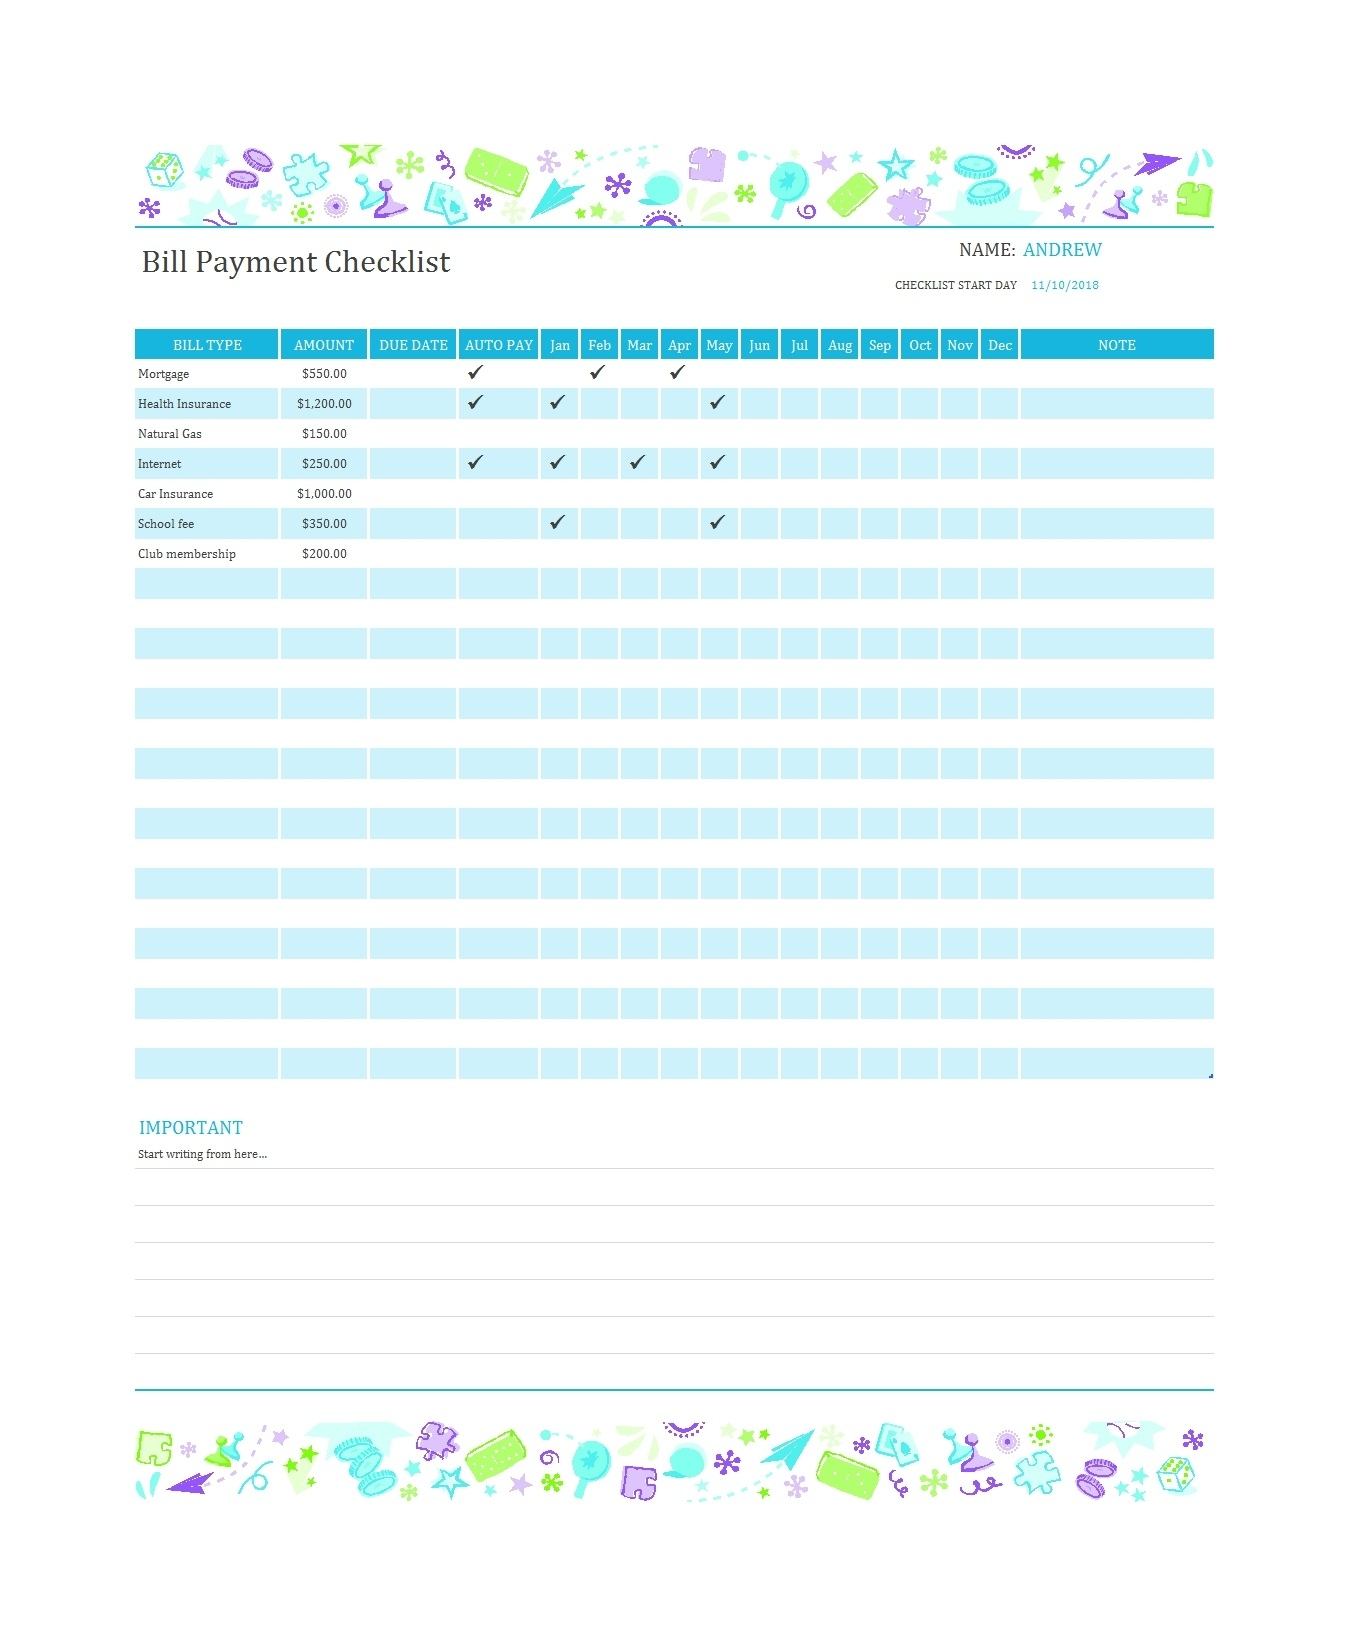 32 Free Bill Pay Checklists & Bill Calendars (Pdf, Word & Excel) within Blank Monthly Bills Calendar Printable